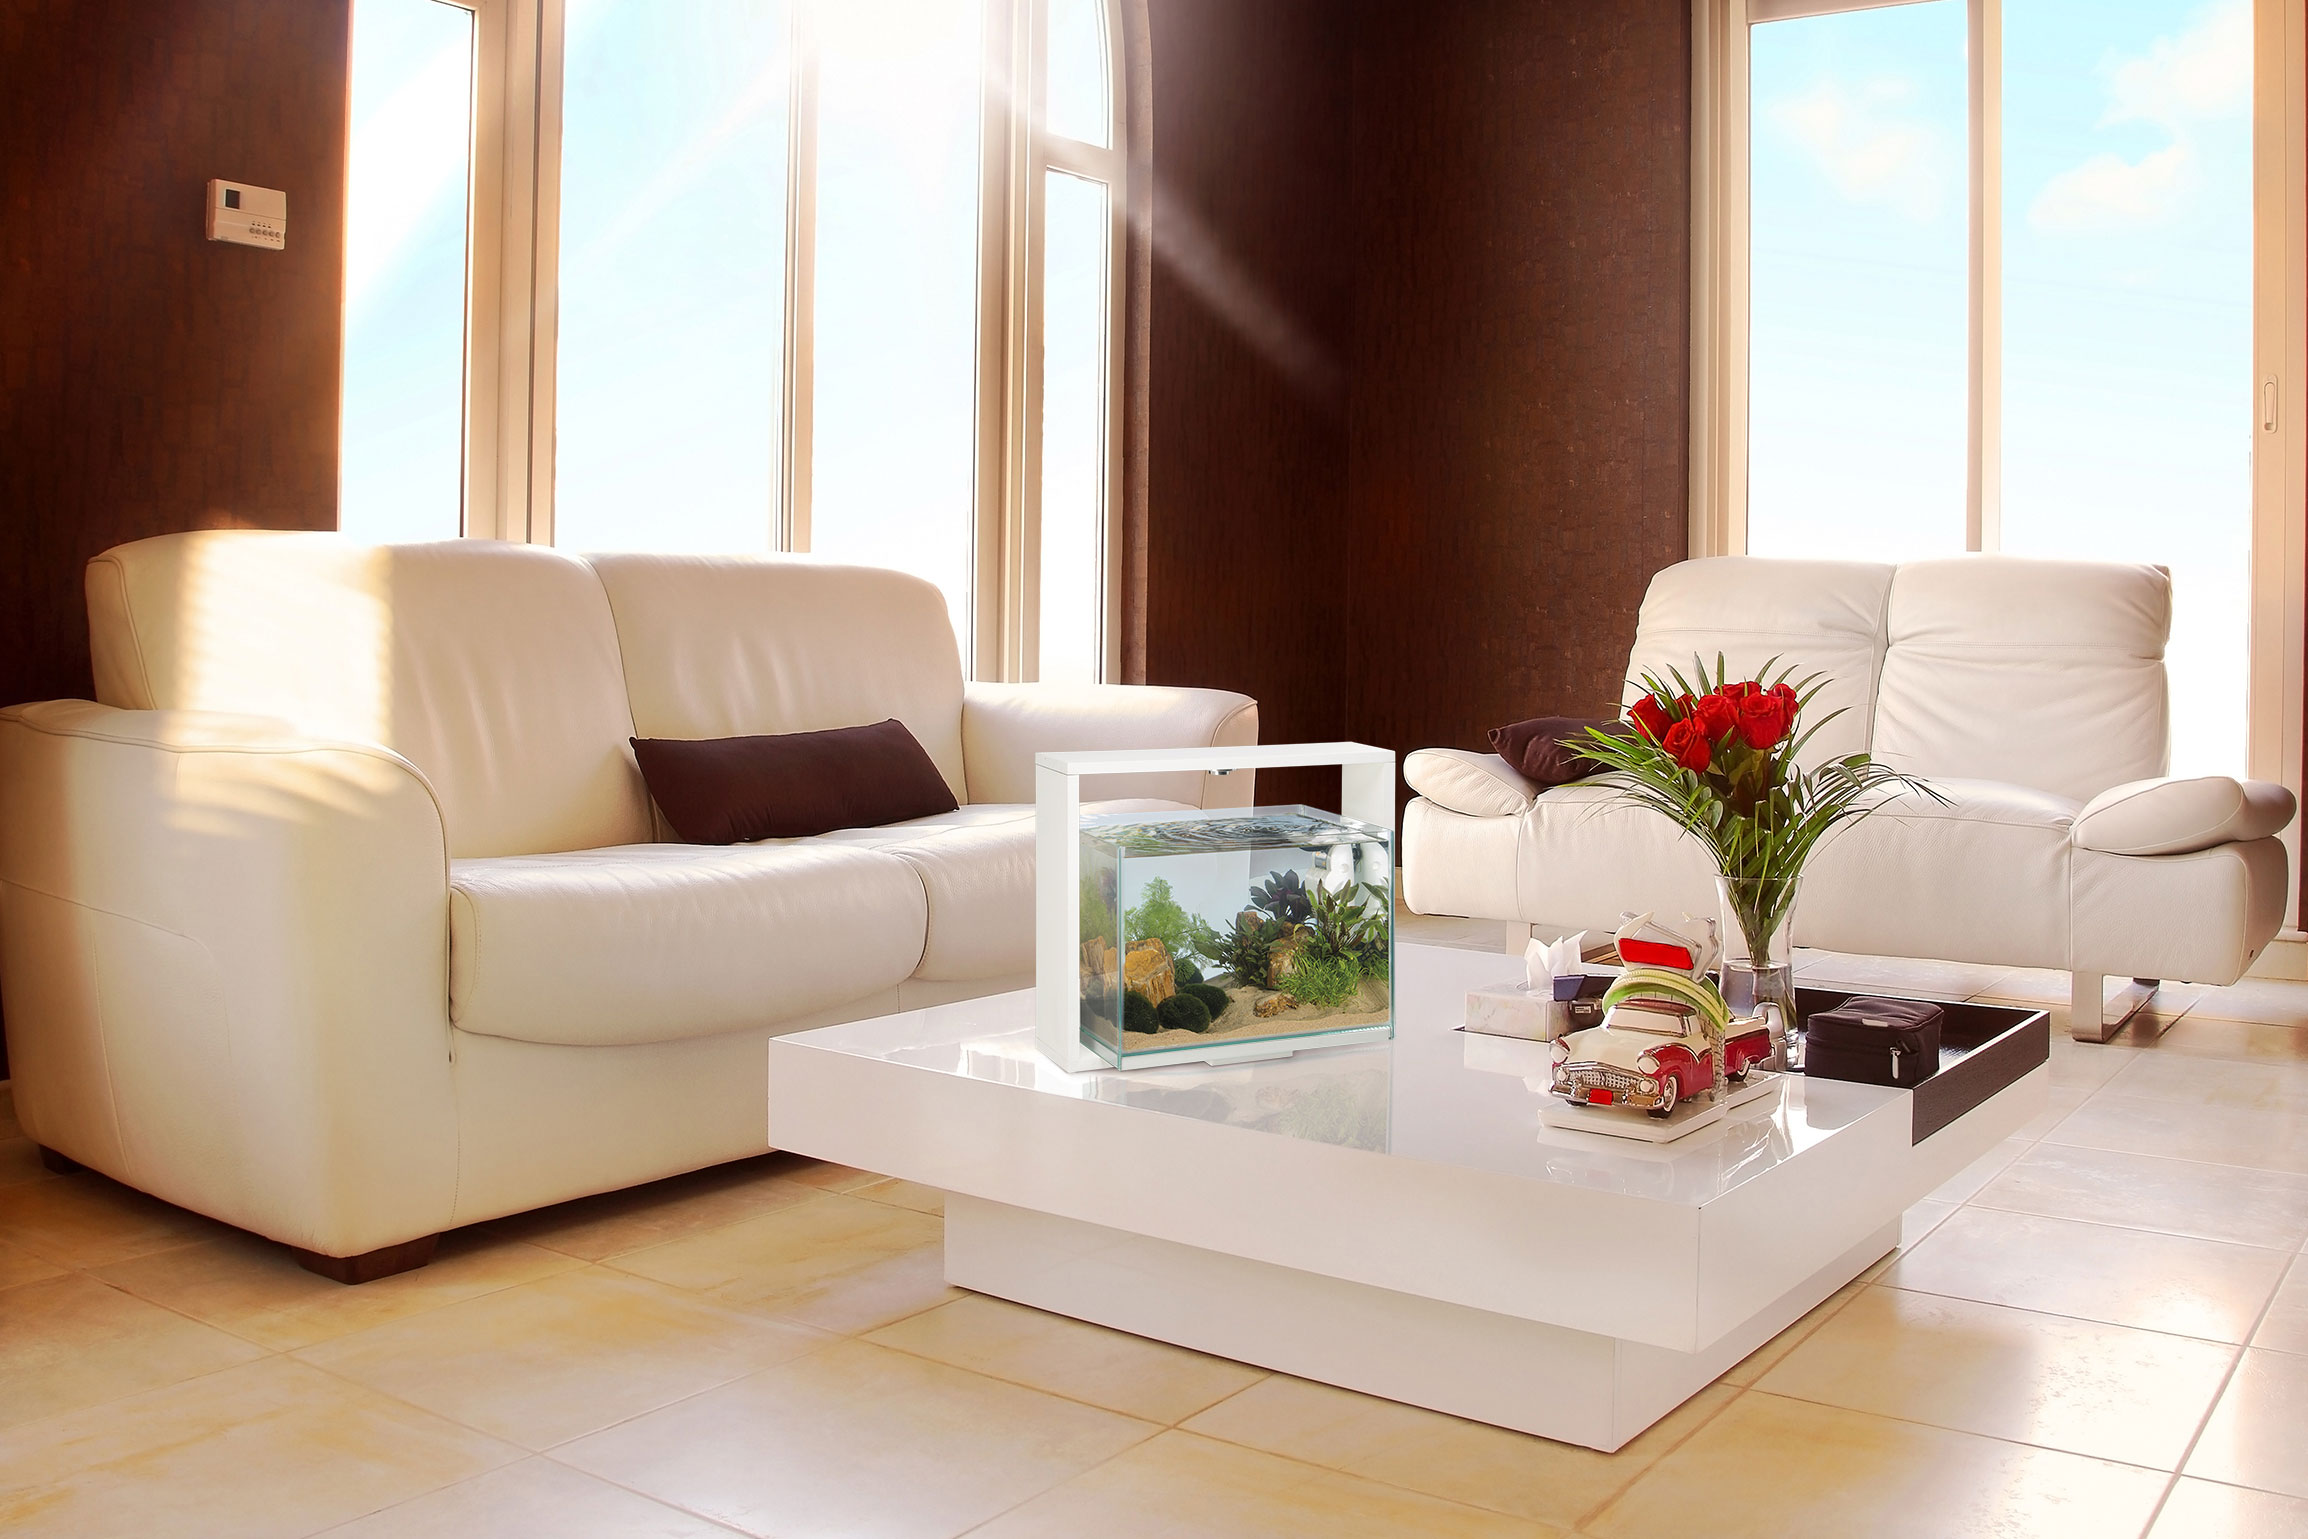 How To Furnish A House With Design Fish Tank